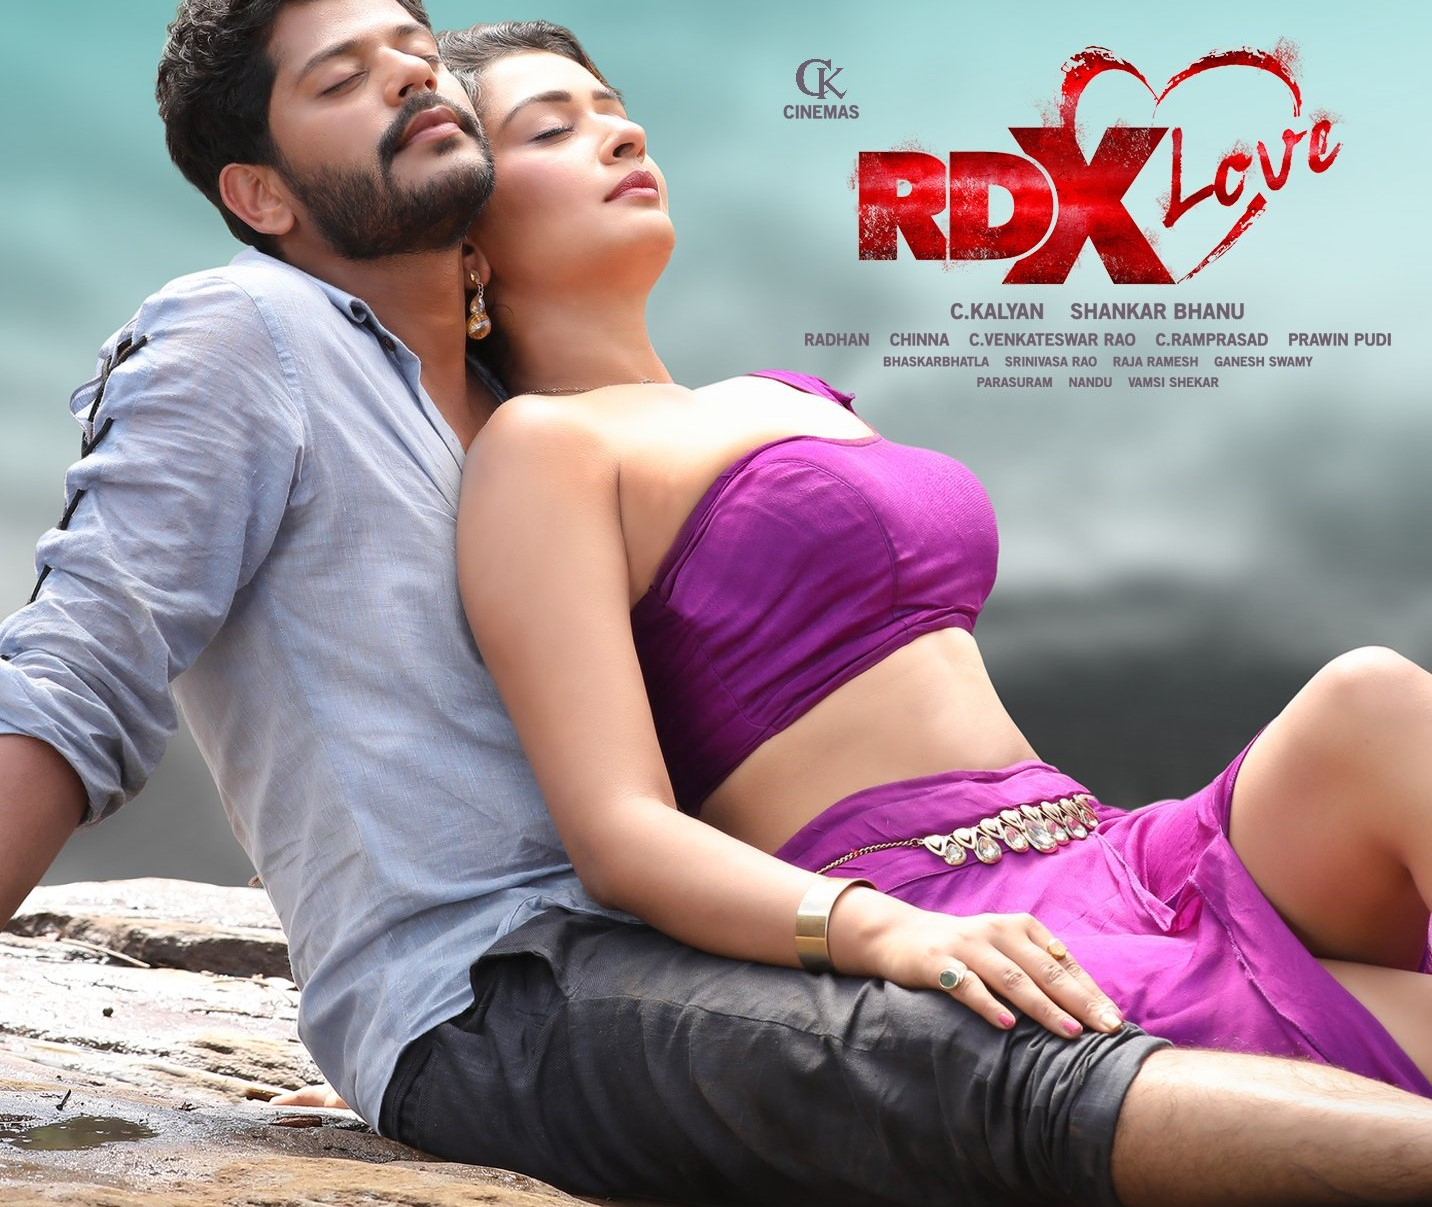 All you need to know about Payal Rajput's skin show in RDX Love